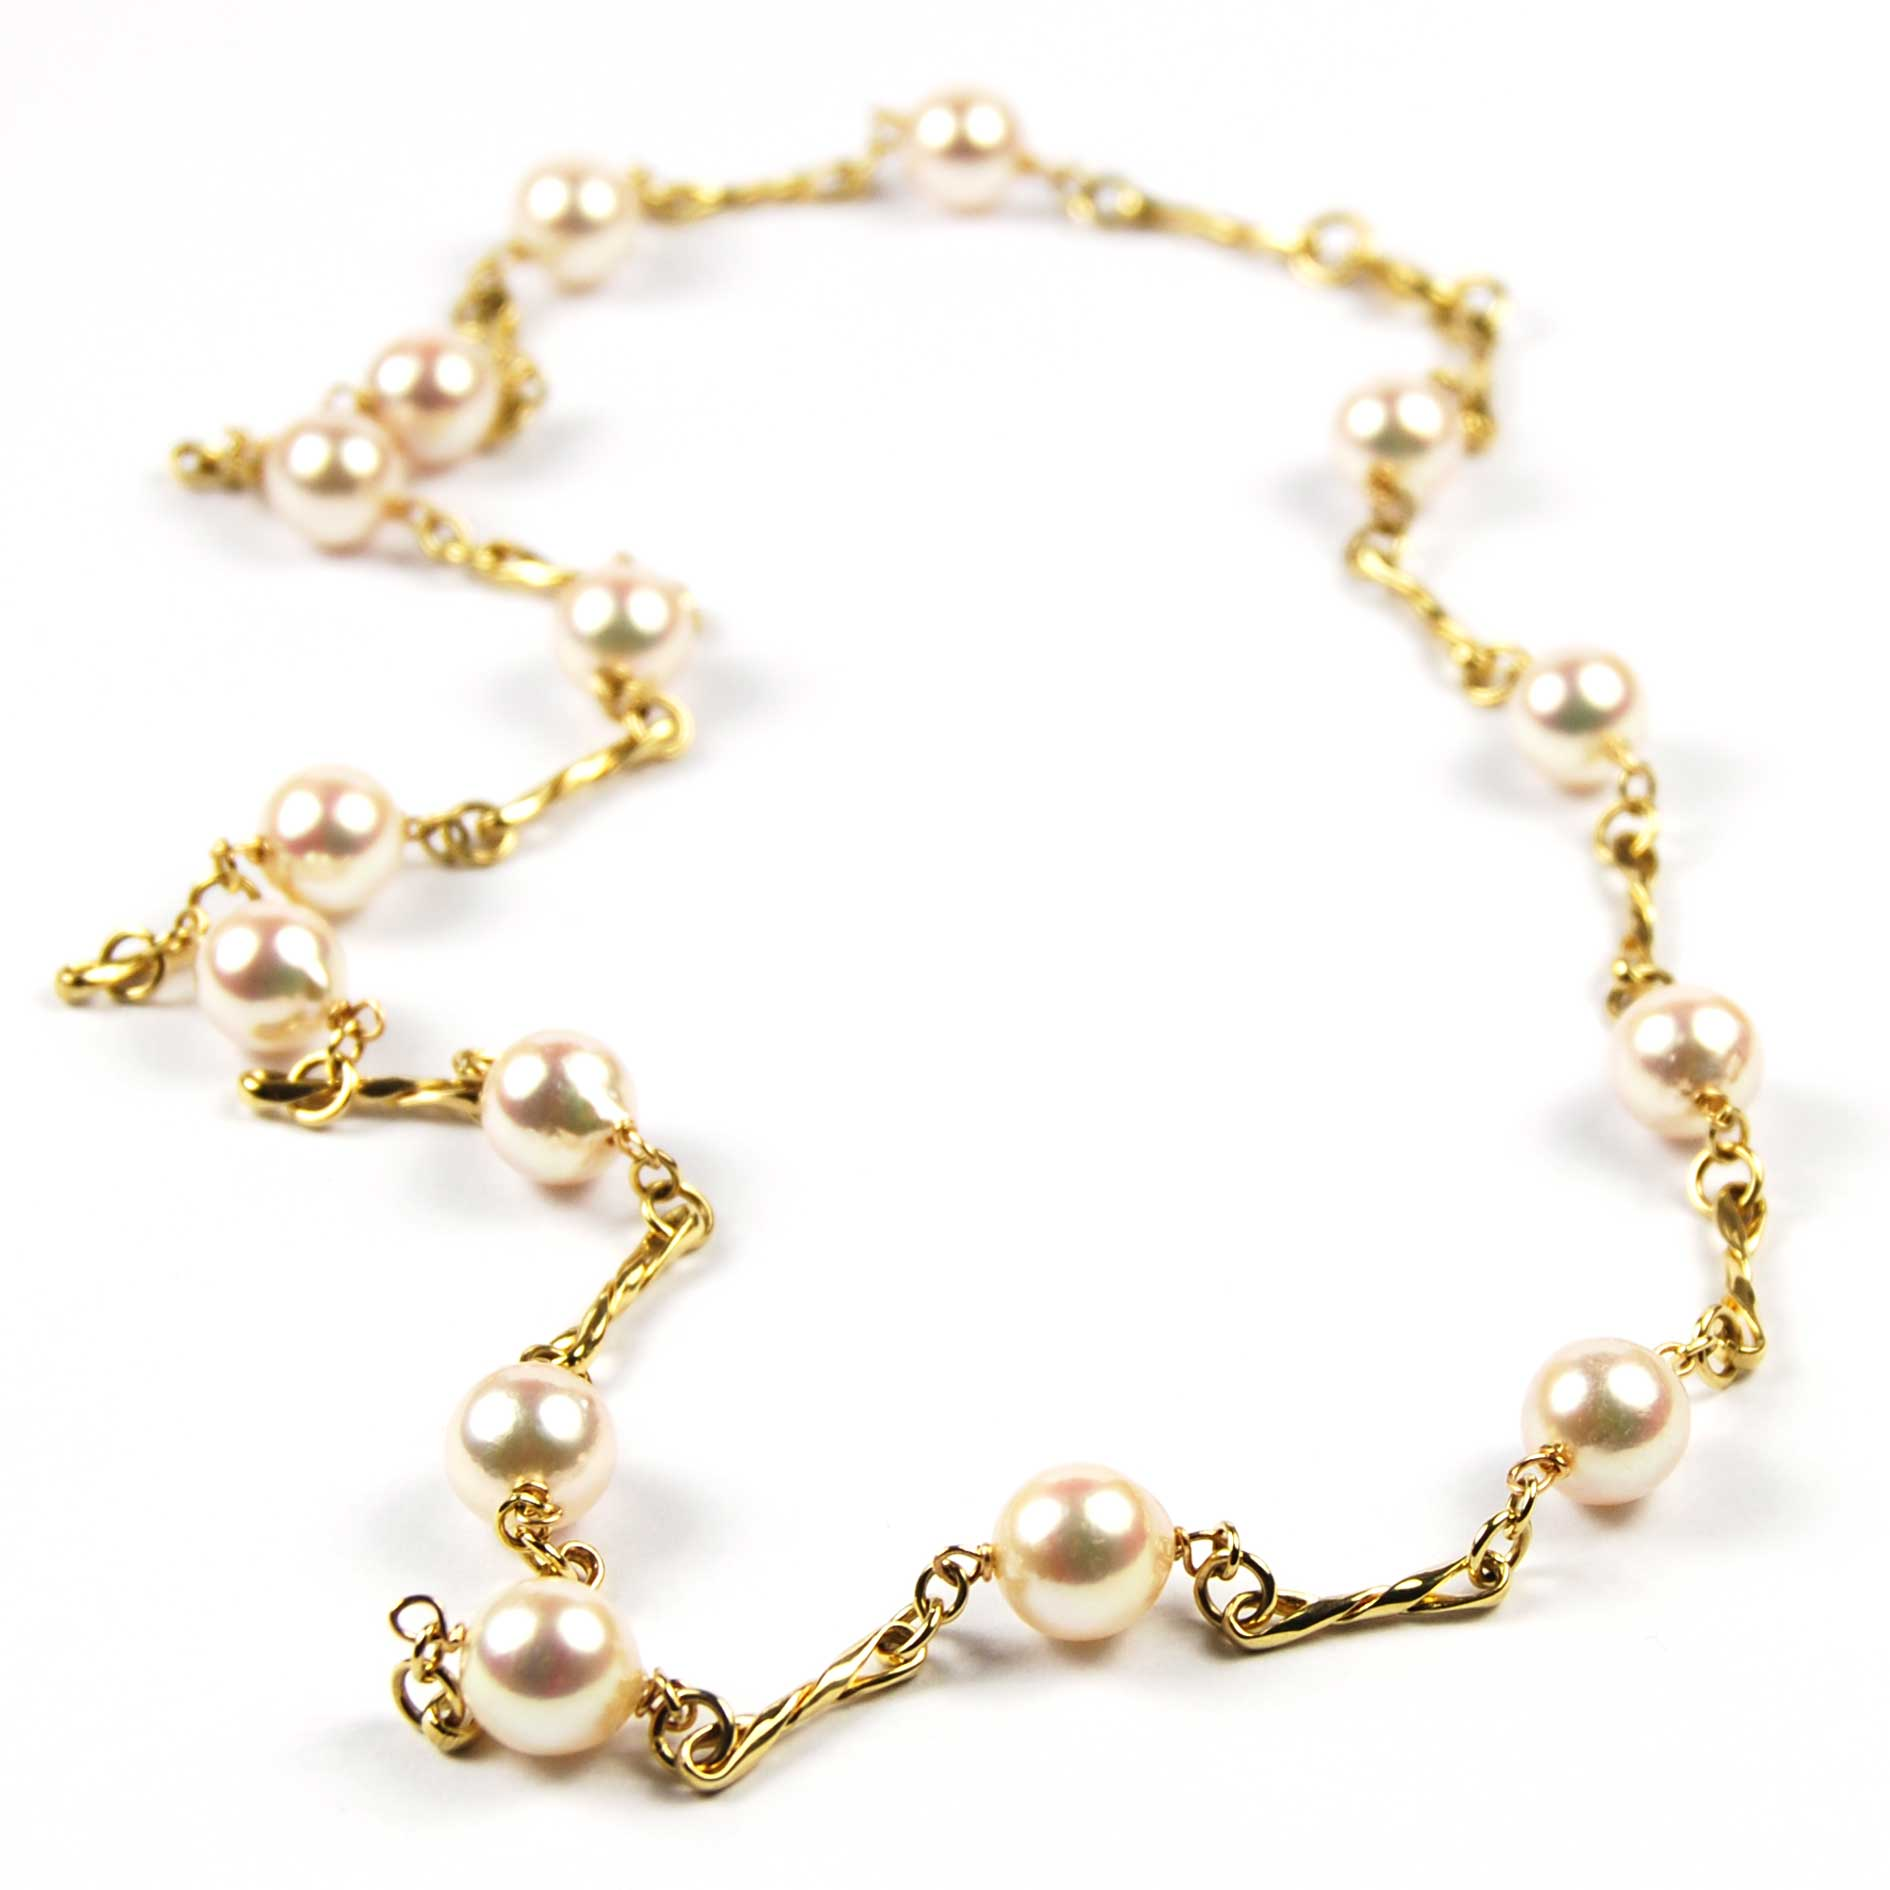 9 Carat Yellow Gold Cultured Pearl Necklace